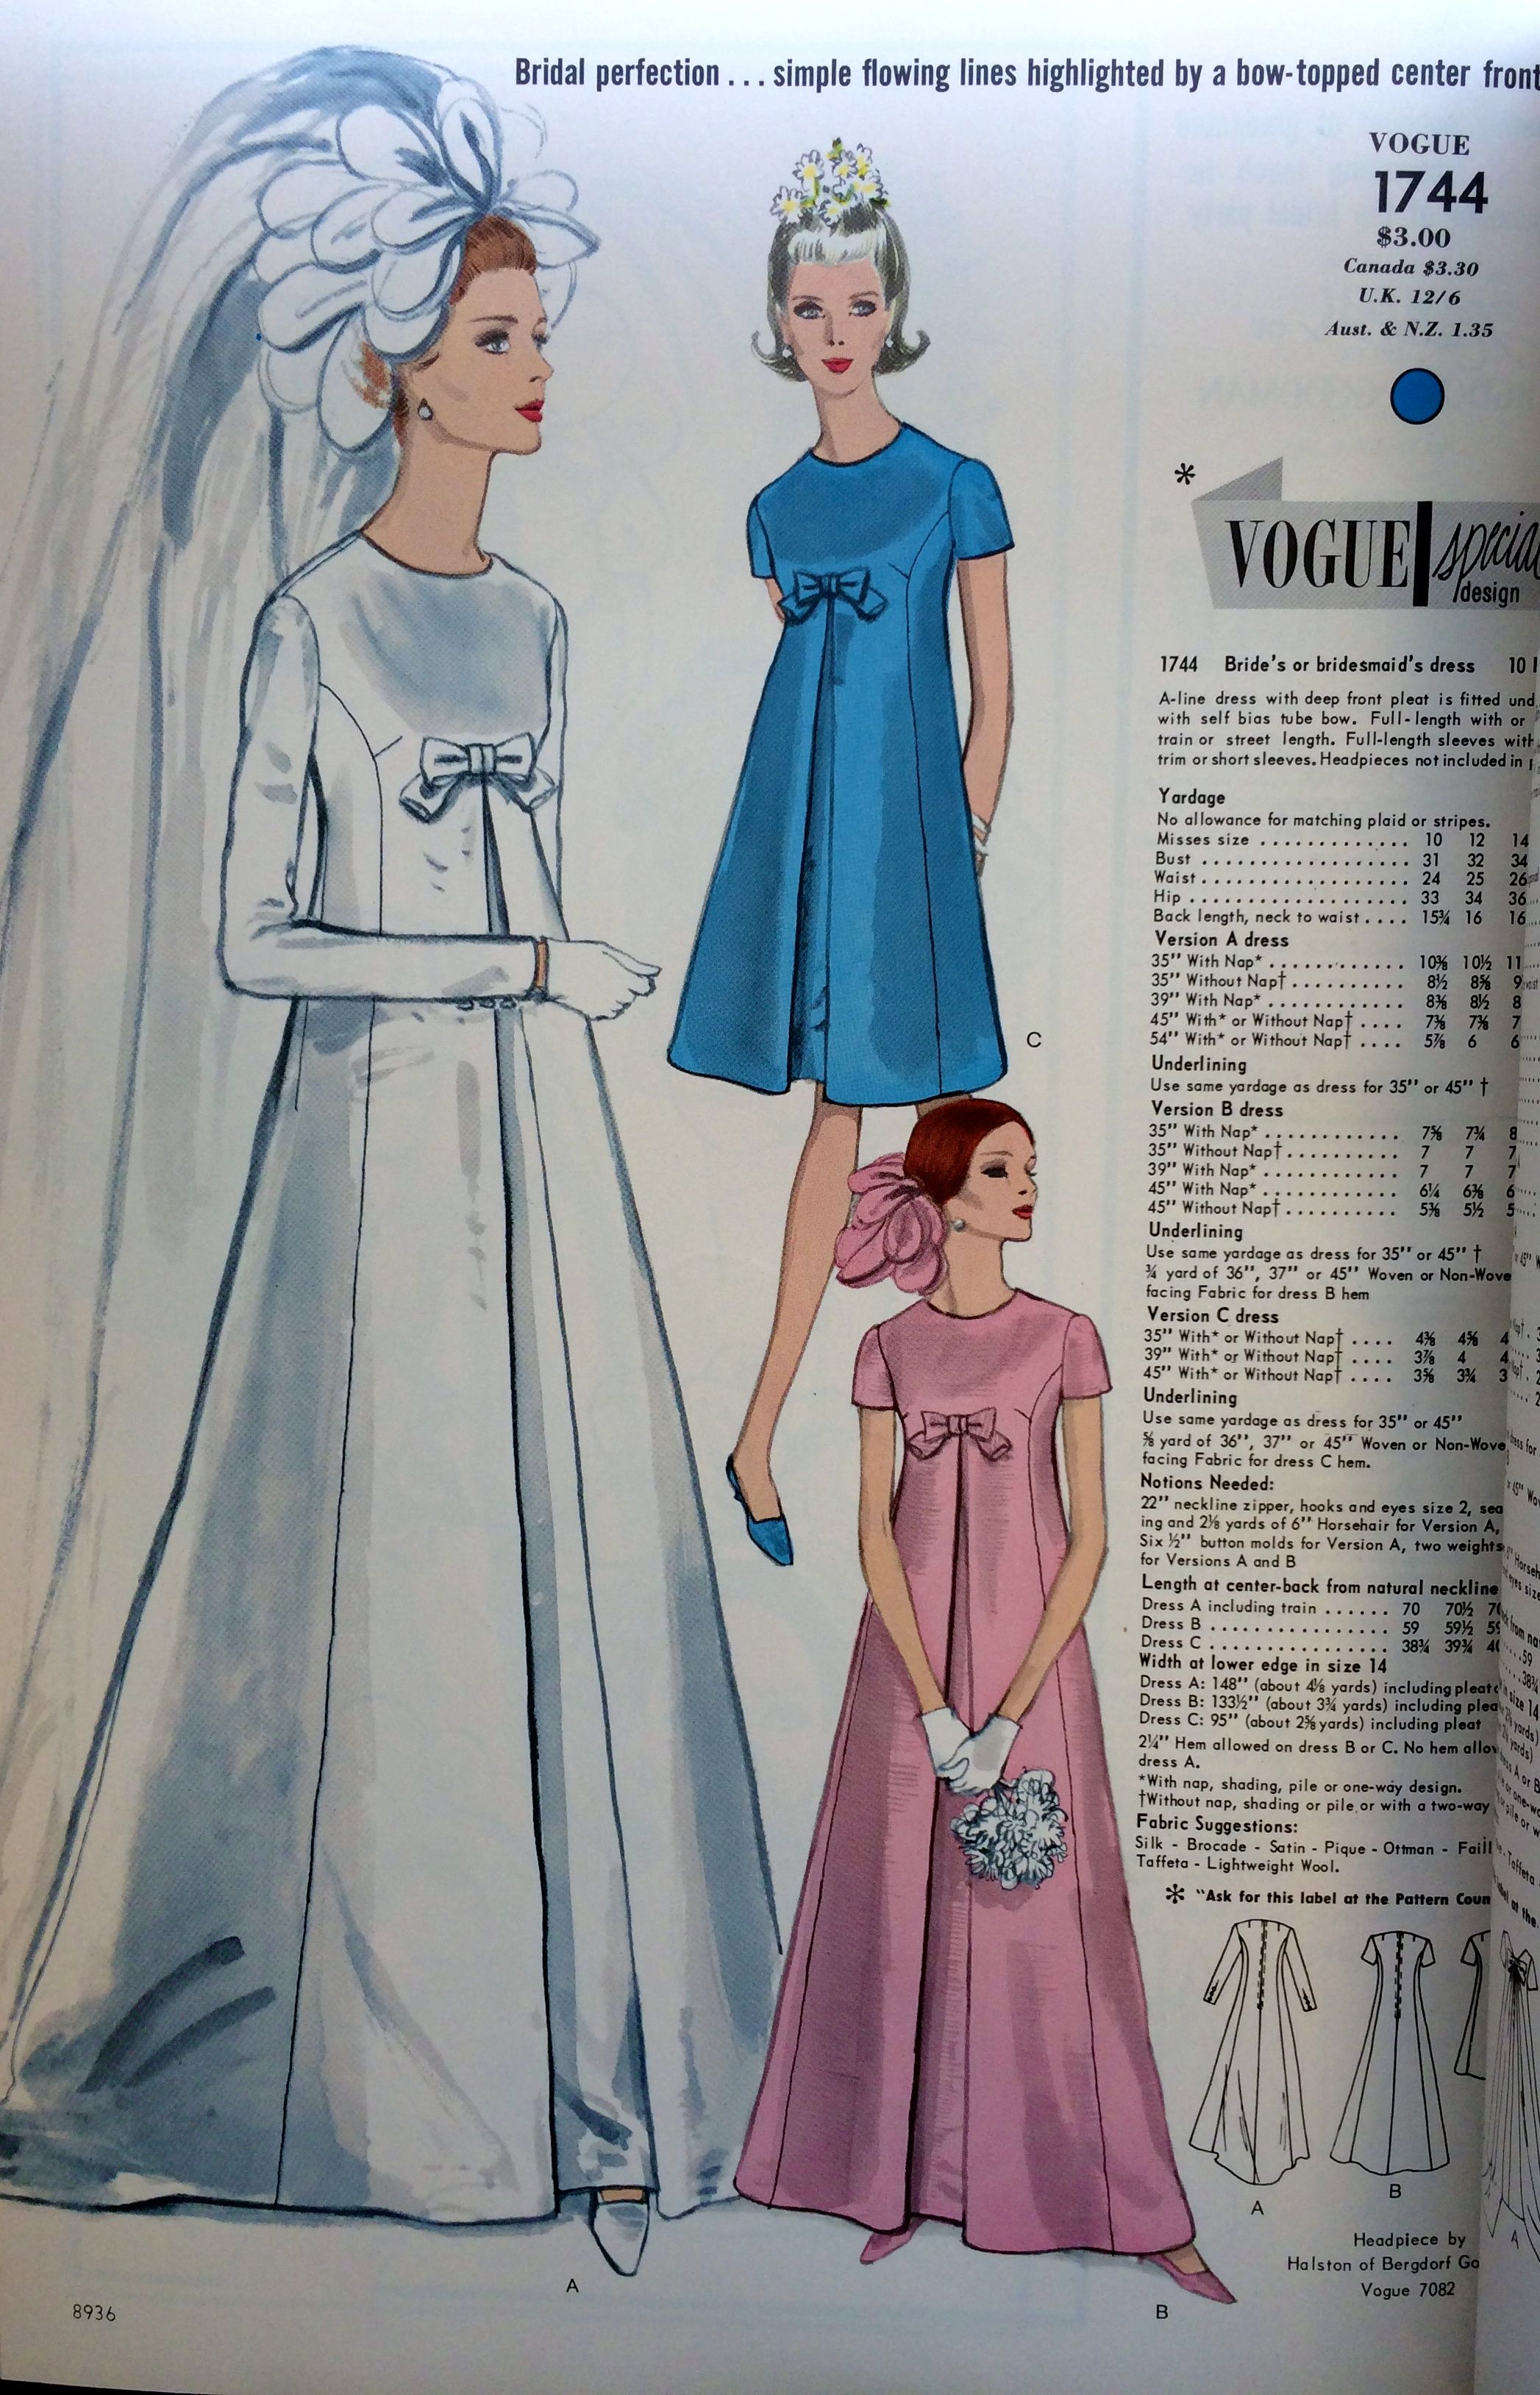 1960s Vintage Bridal Gown with Bow